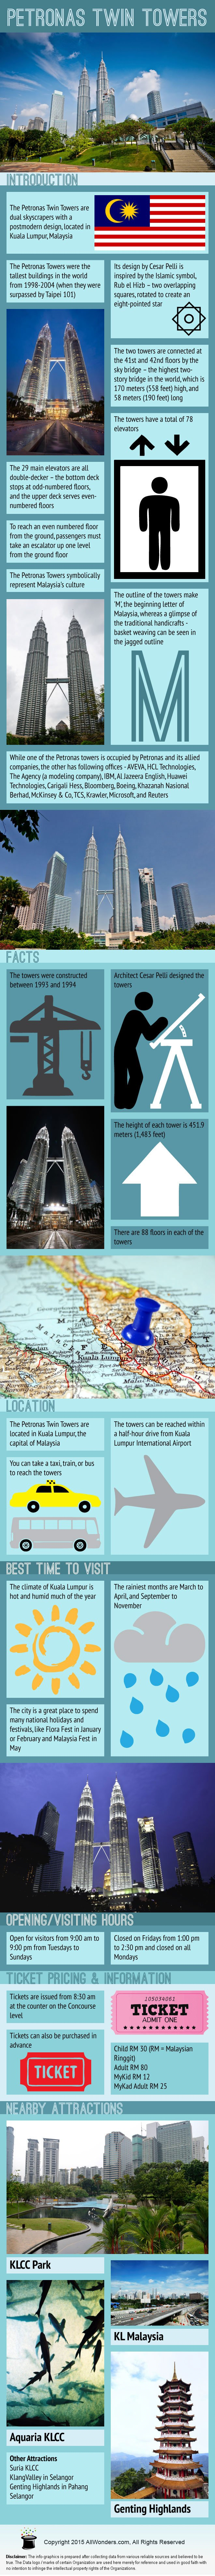 Petronas Twin Towers - Infographic